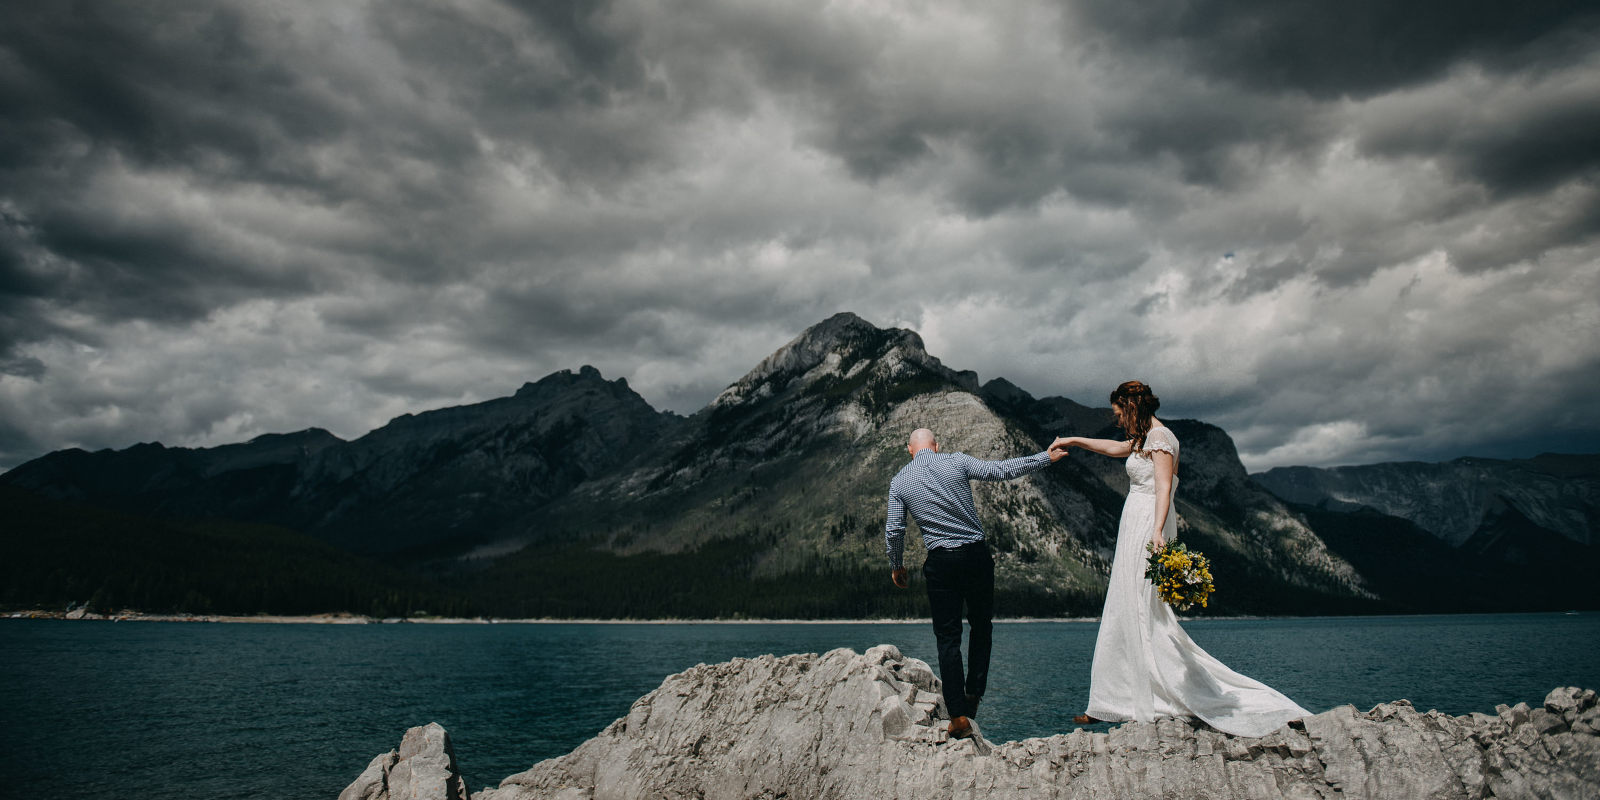 Calgary Wedding Photographer, Calgary Wedding, Best Photographers Calgary, Canmore Wedding Photographer, Banff Wedding Photographer